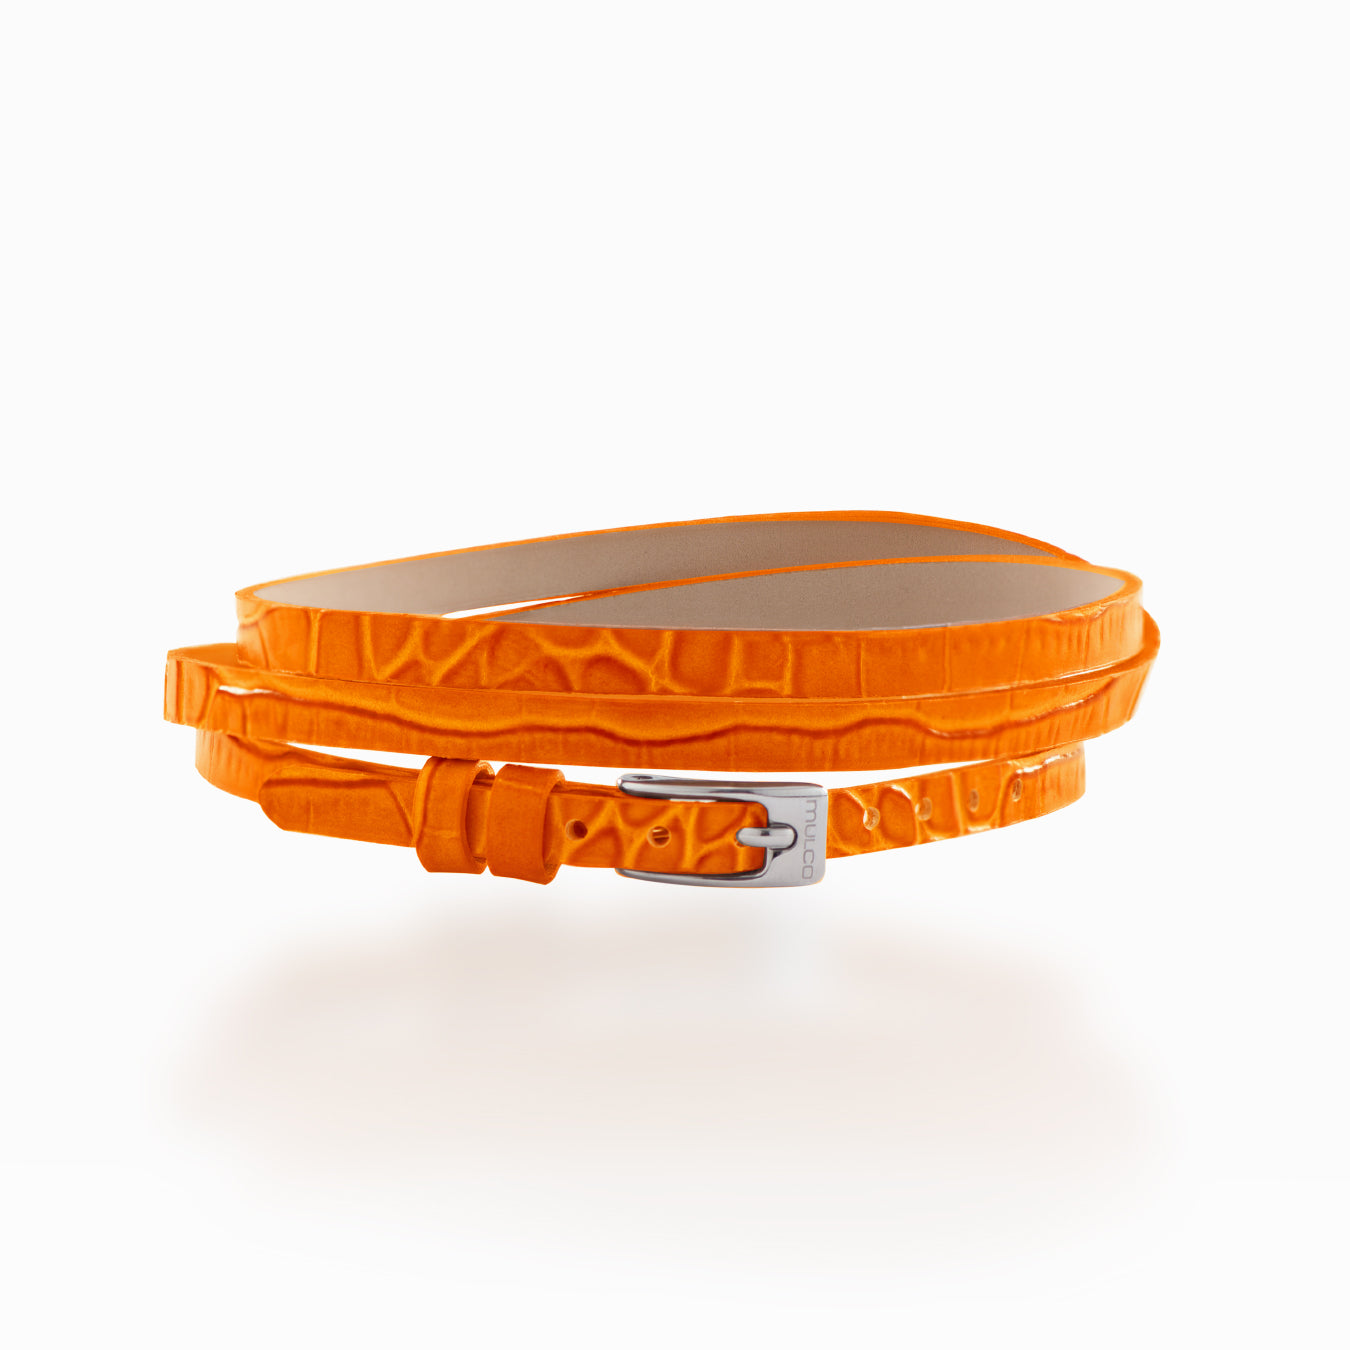 Mulco Accessories | Leather Wrap Bracelet Orange